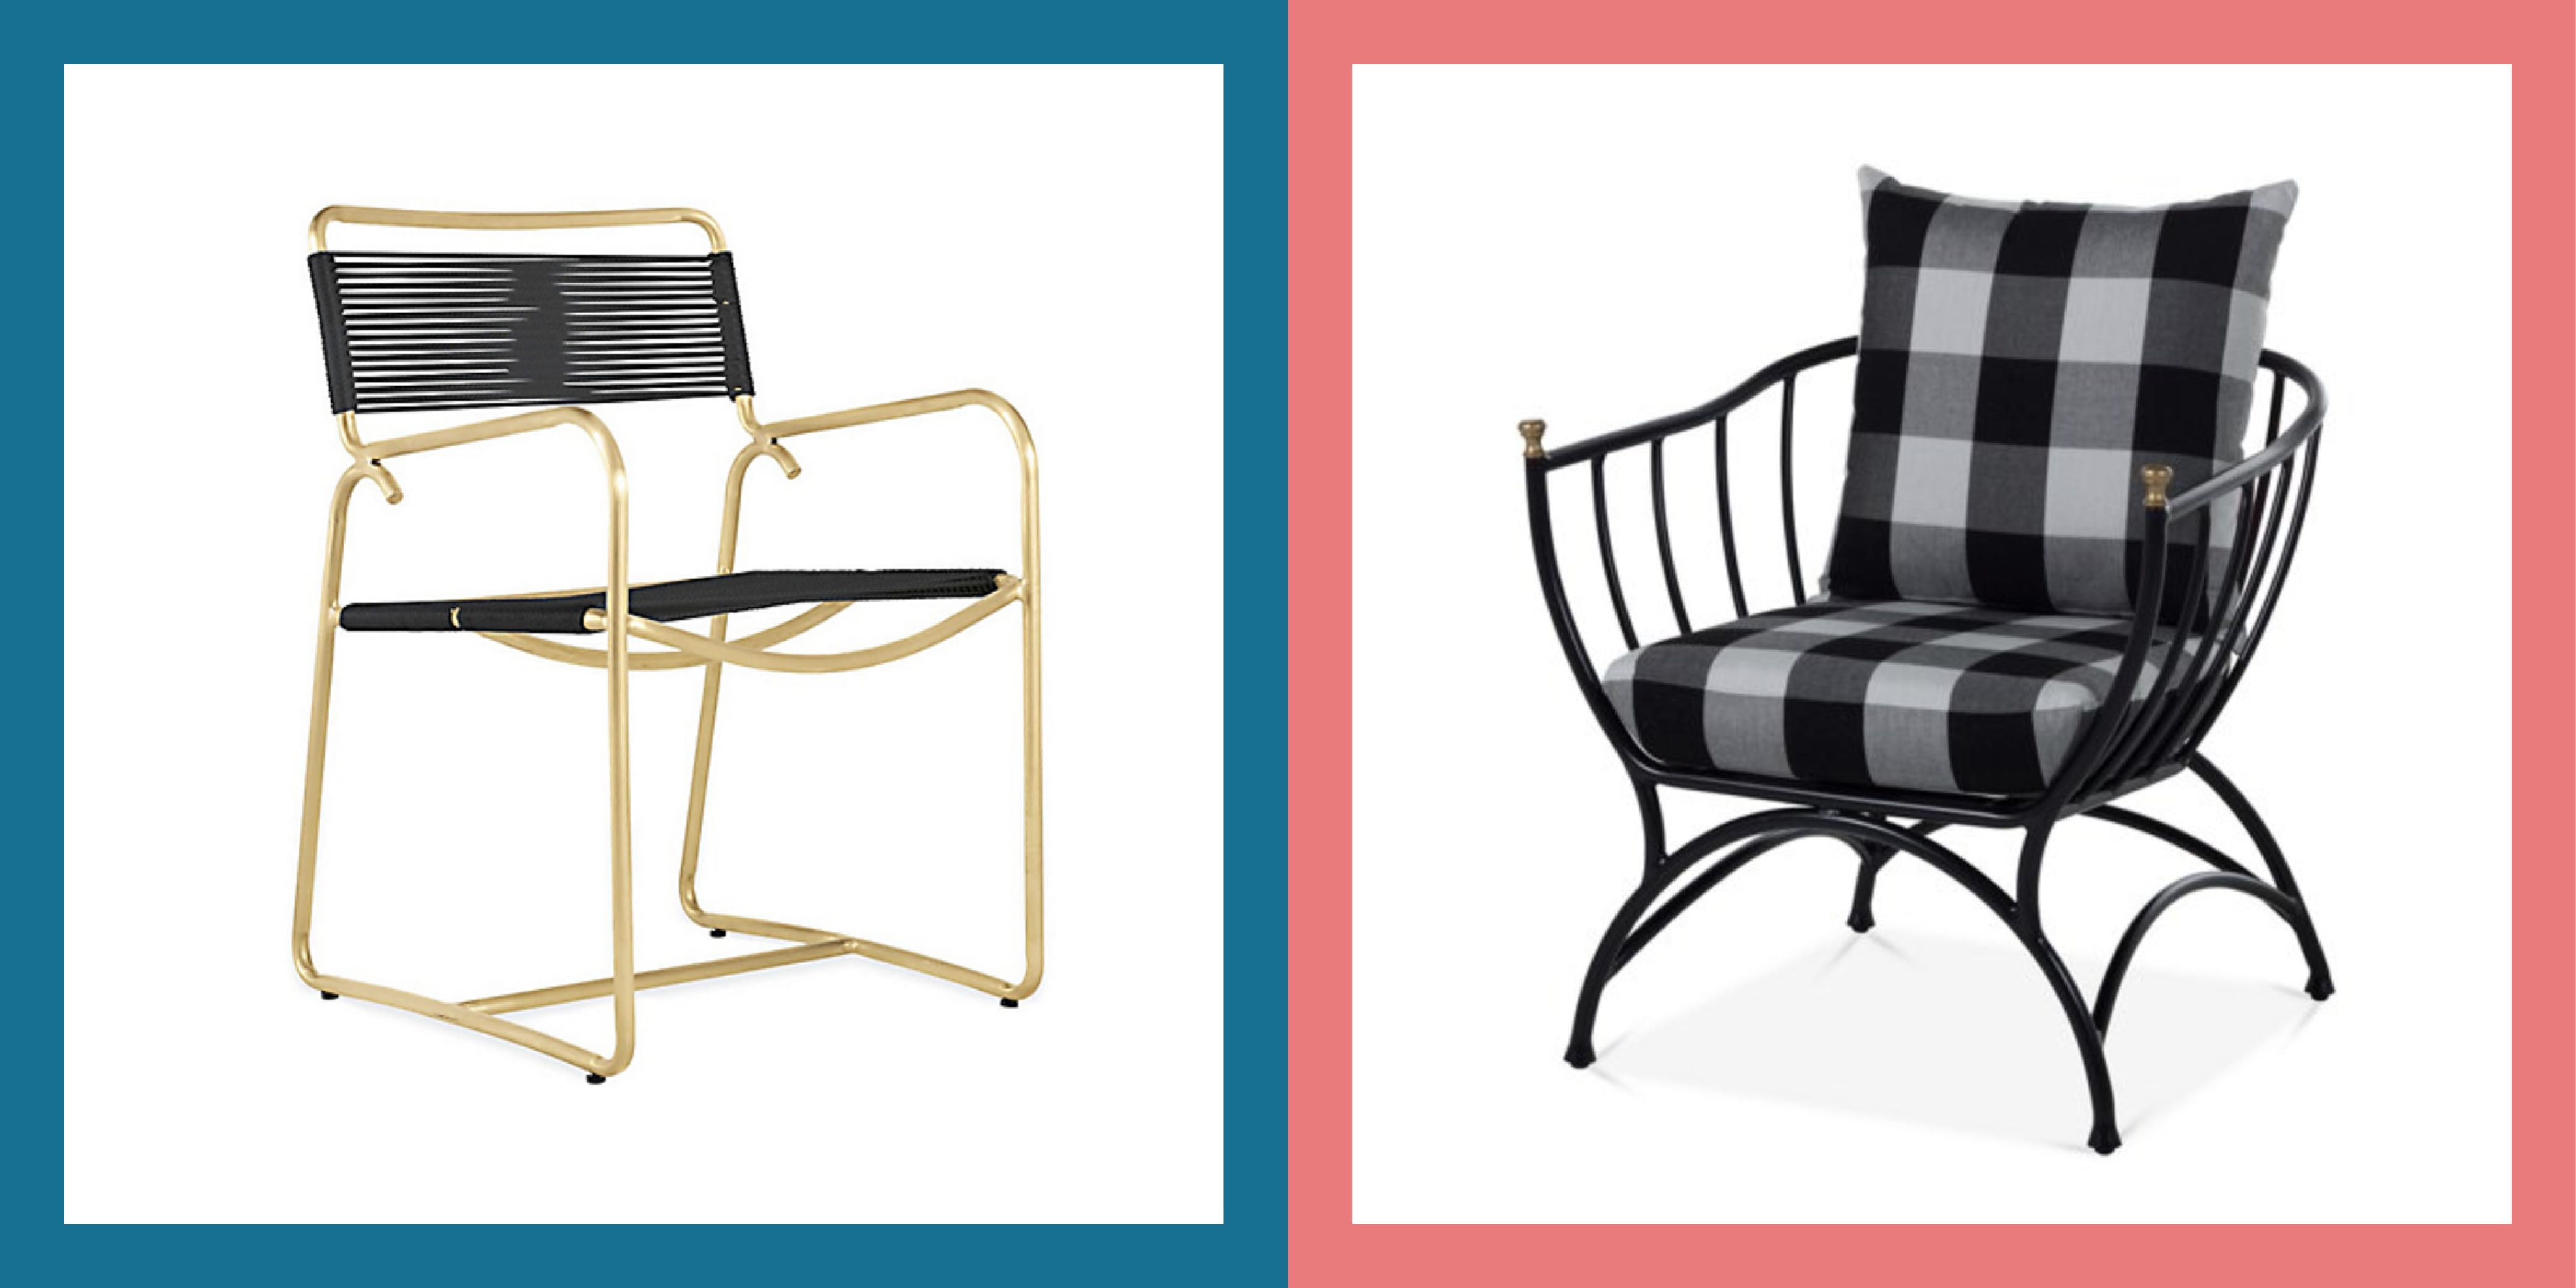 The 6 Top Garden Chairs - Stylish Outdoor Seating for Gardens